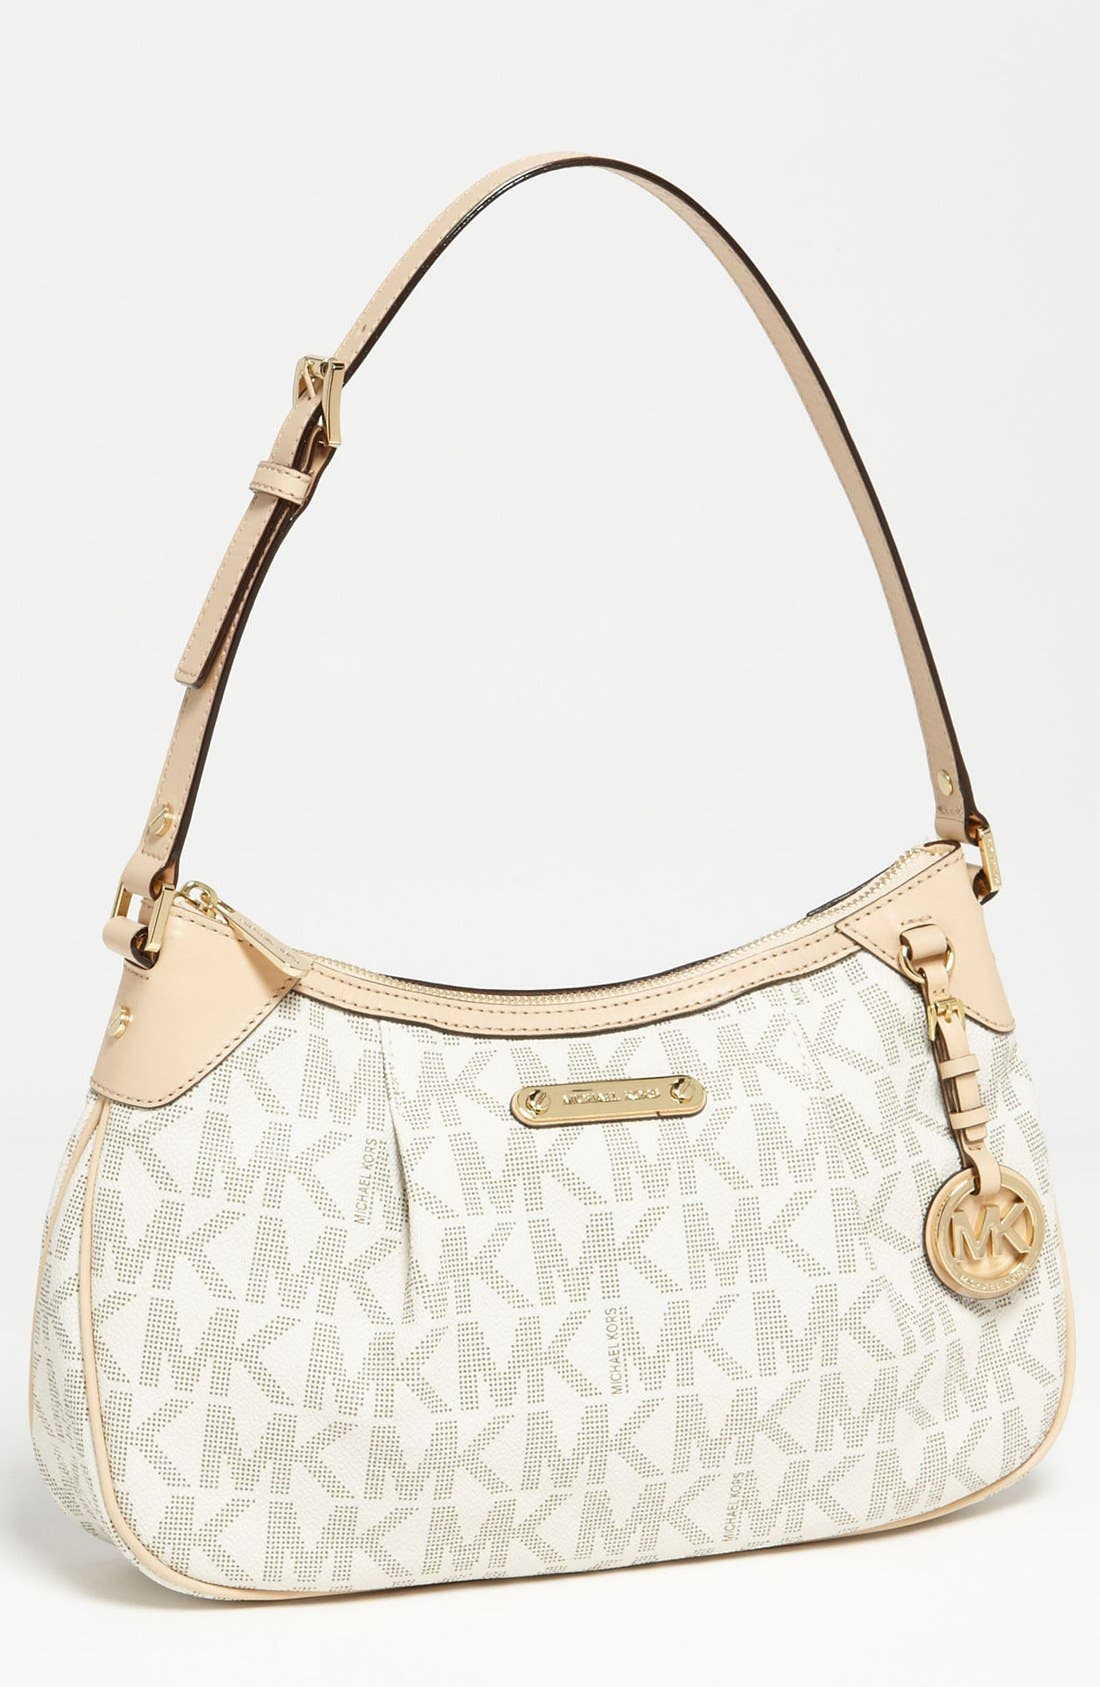 Alternate Image 1 Selected - MICHAEL Michael Kors 'Jet Set Signature - Medium' Shoulder Bag